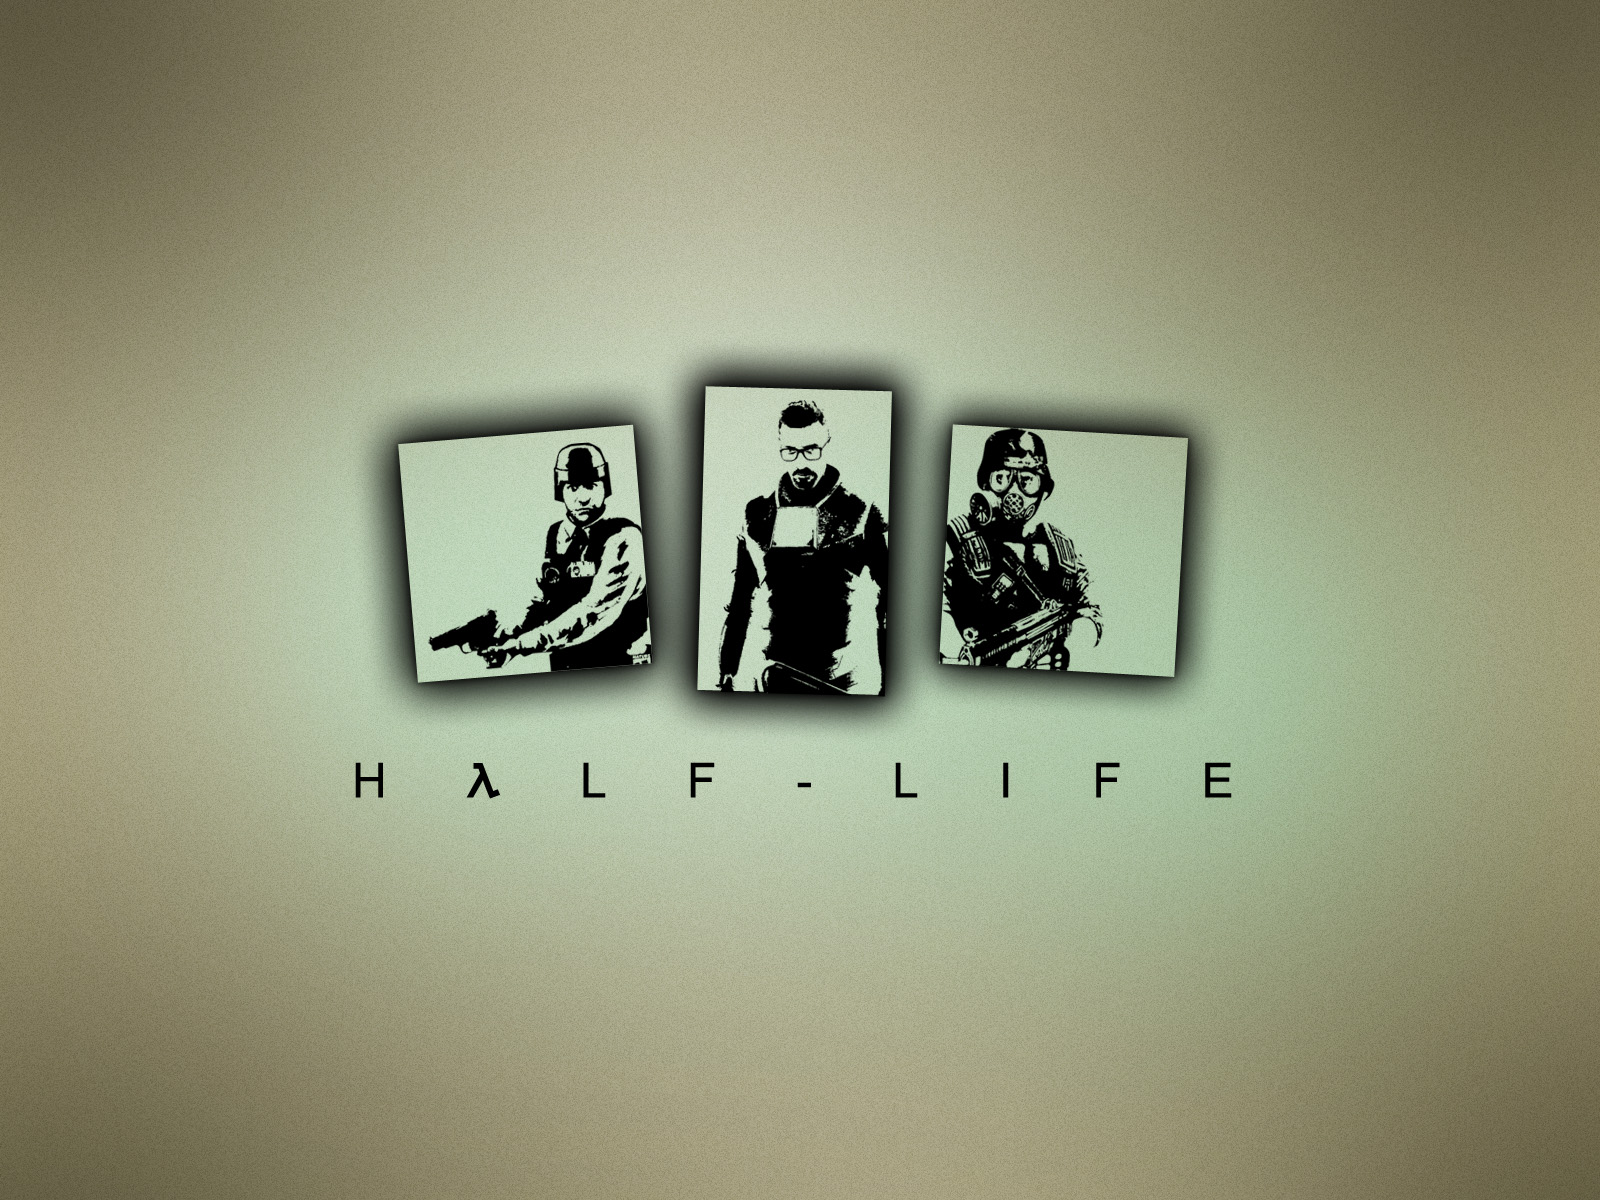 Half Life Wallpapers